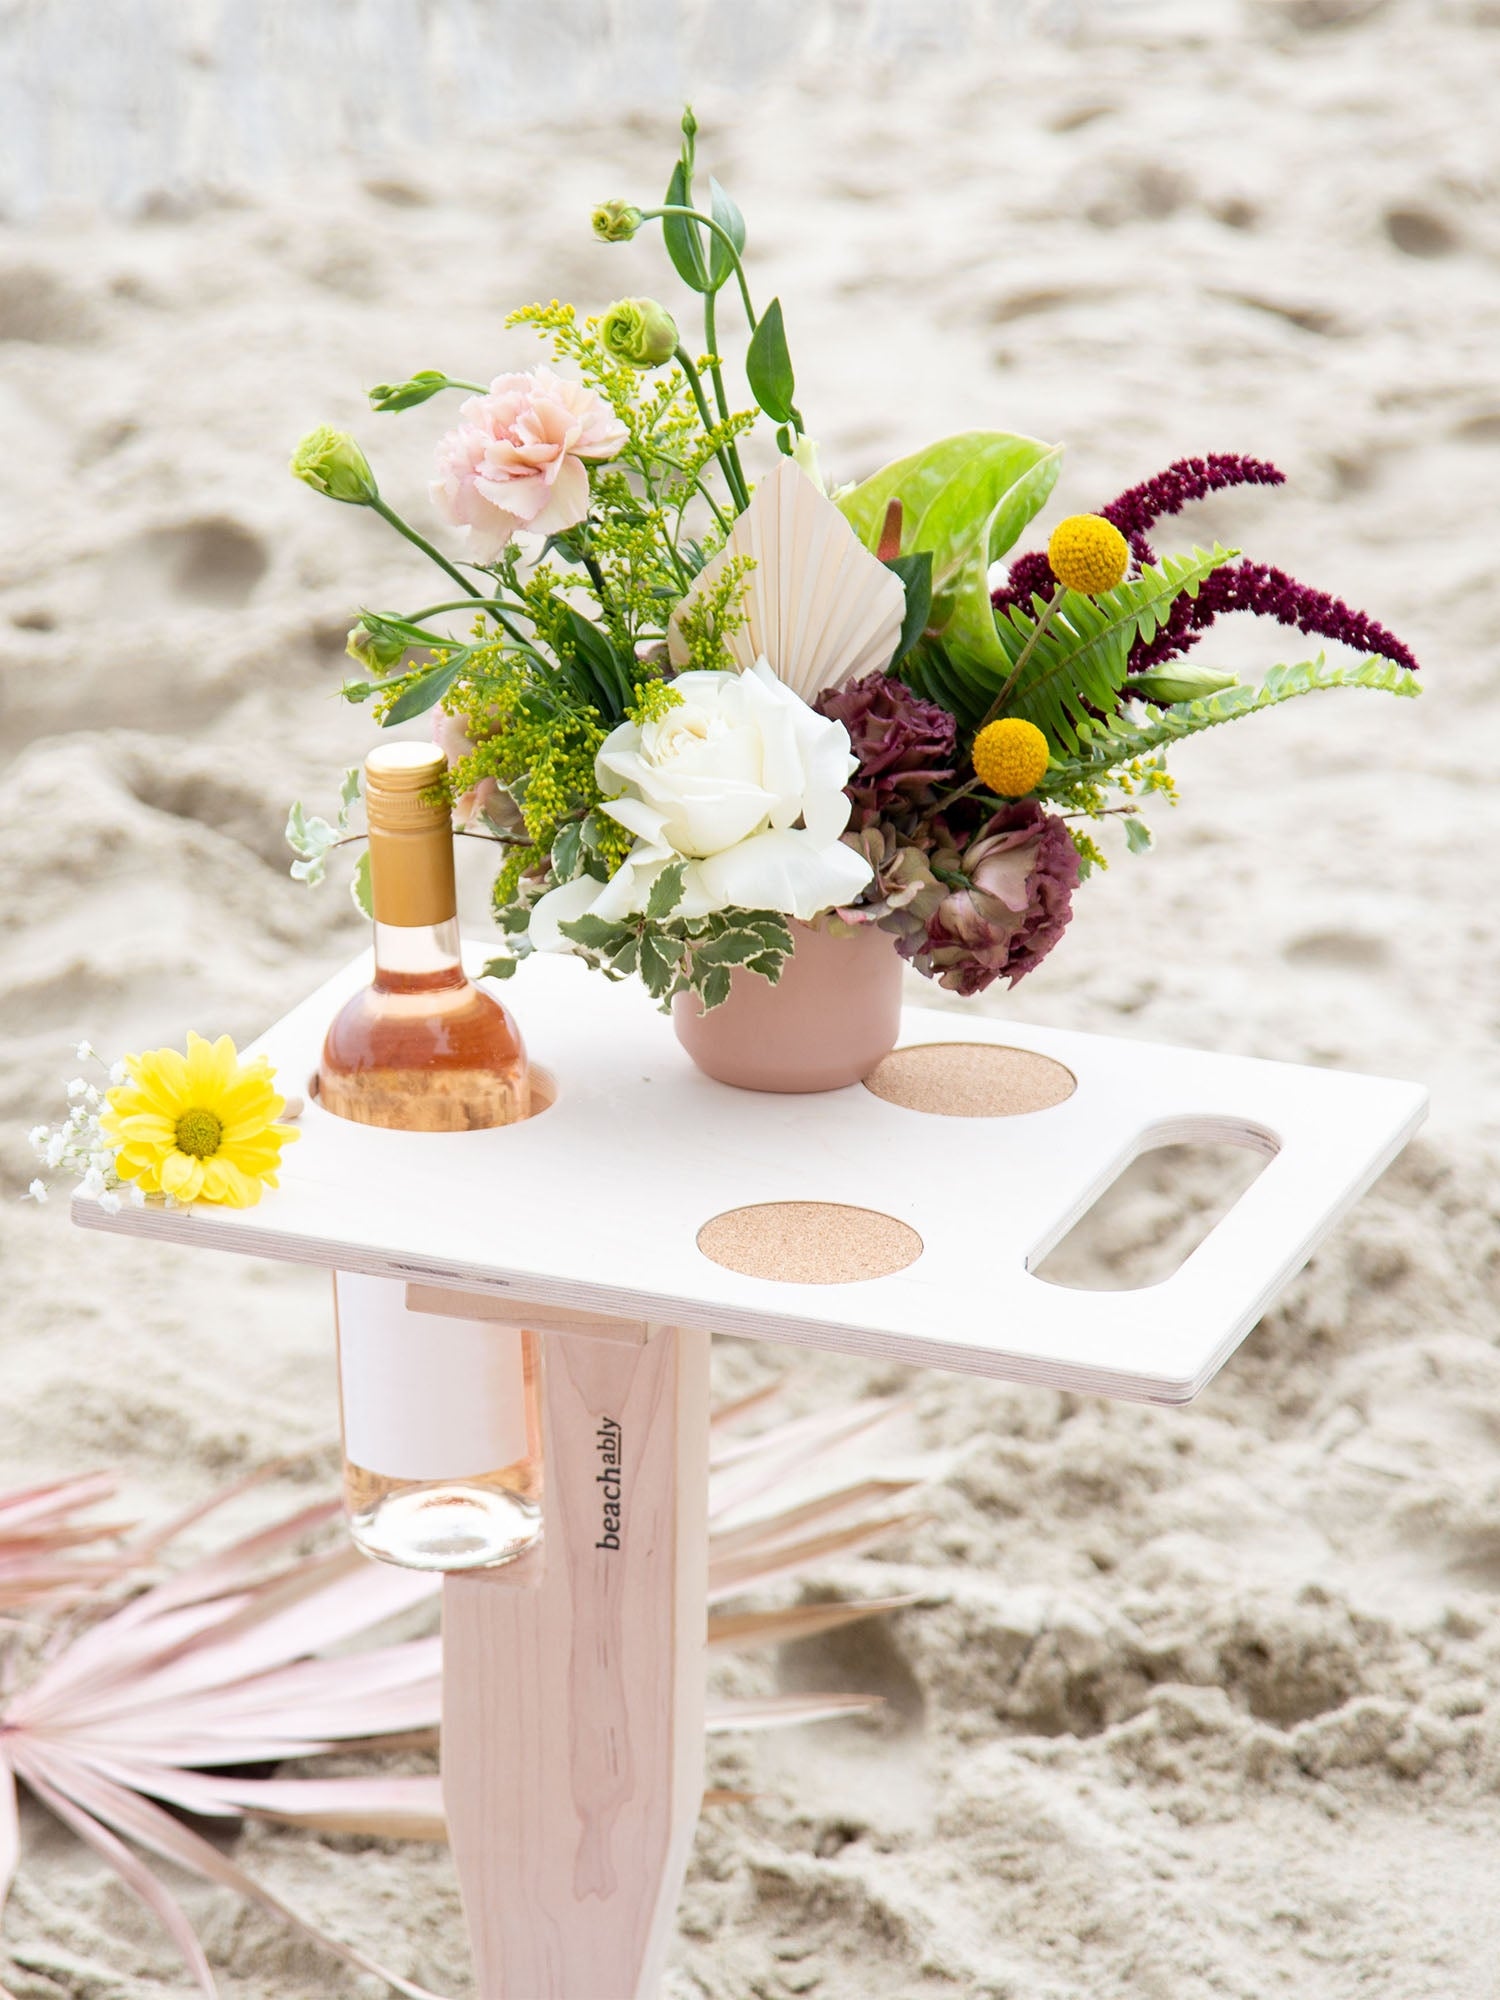 Goulburn portable beach table in beach blonde color unfolded standing up in sand at beach with refreshment drinks and floral decor